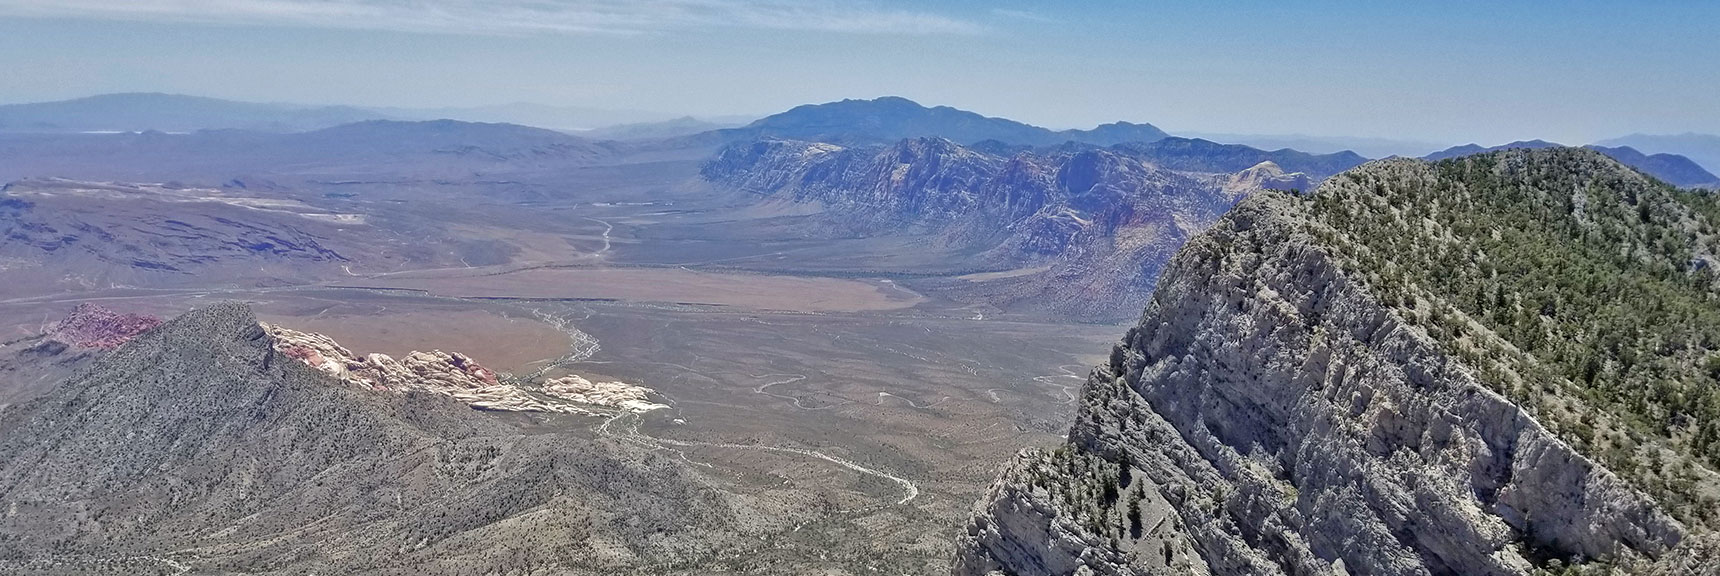 Red Rock Canyon and Rainbow Mountains from La Madre Mountain Summit | La Madre Mountain Northern Approach, Nevada